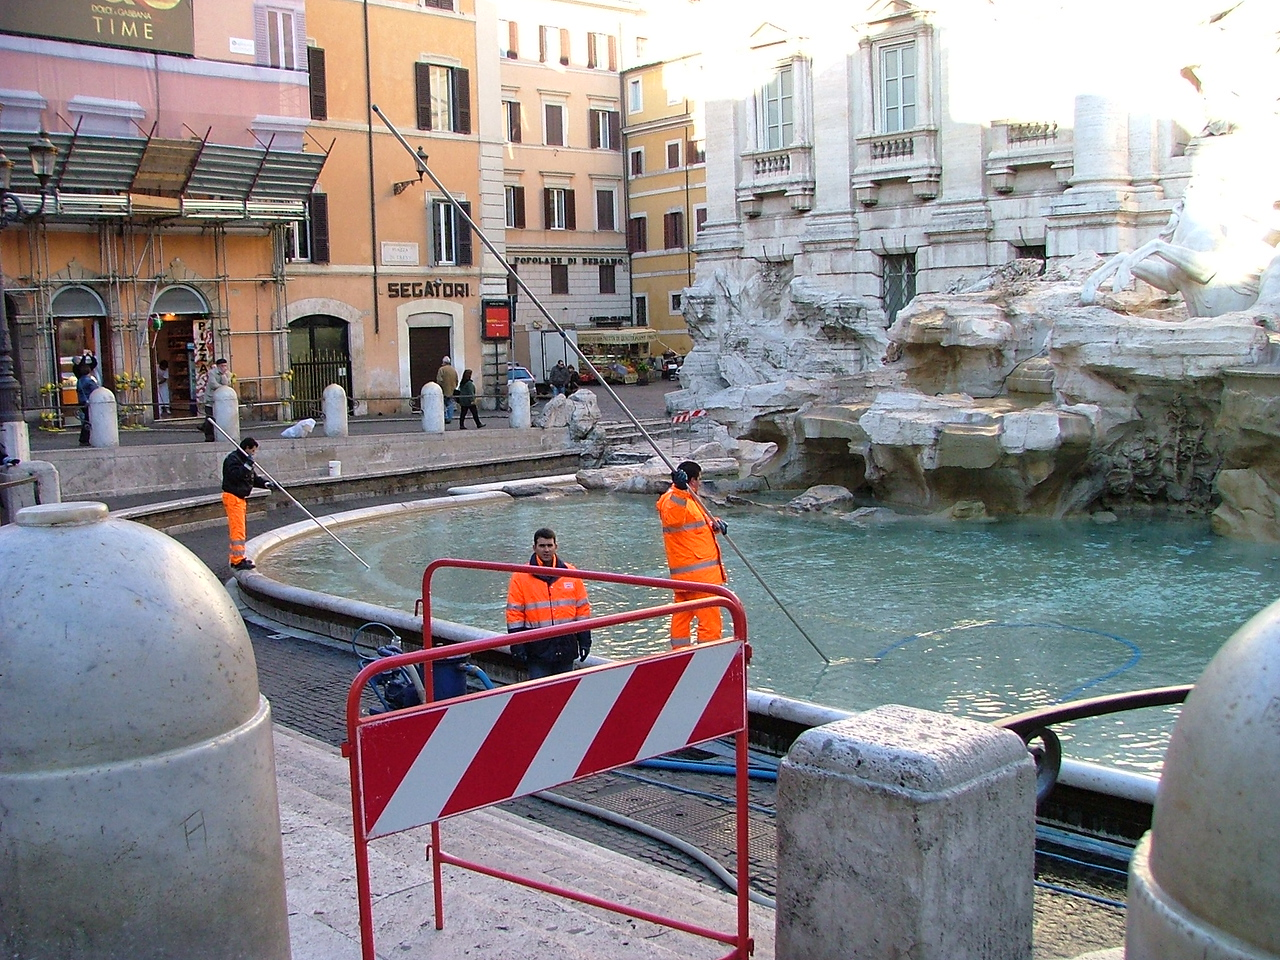 Cleaning out the coins from Trevi Fountain